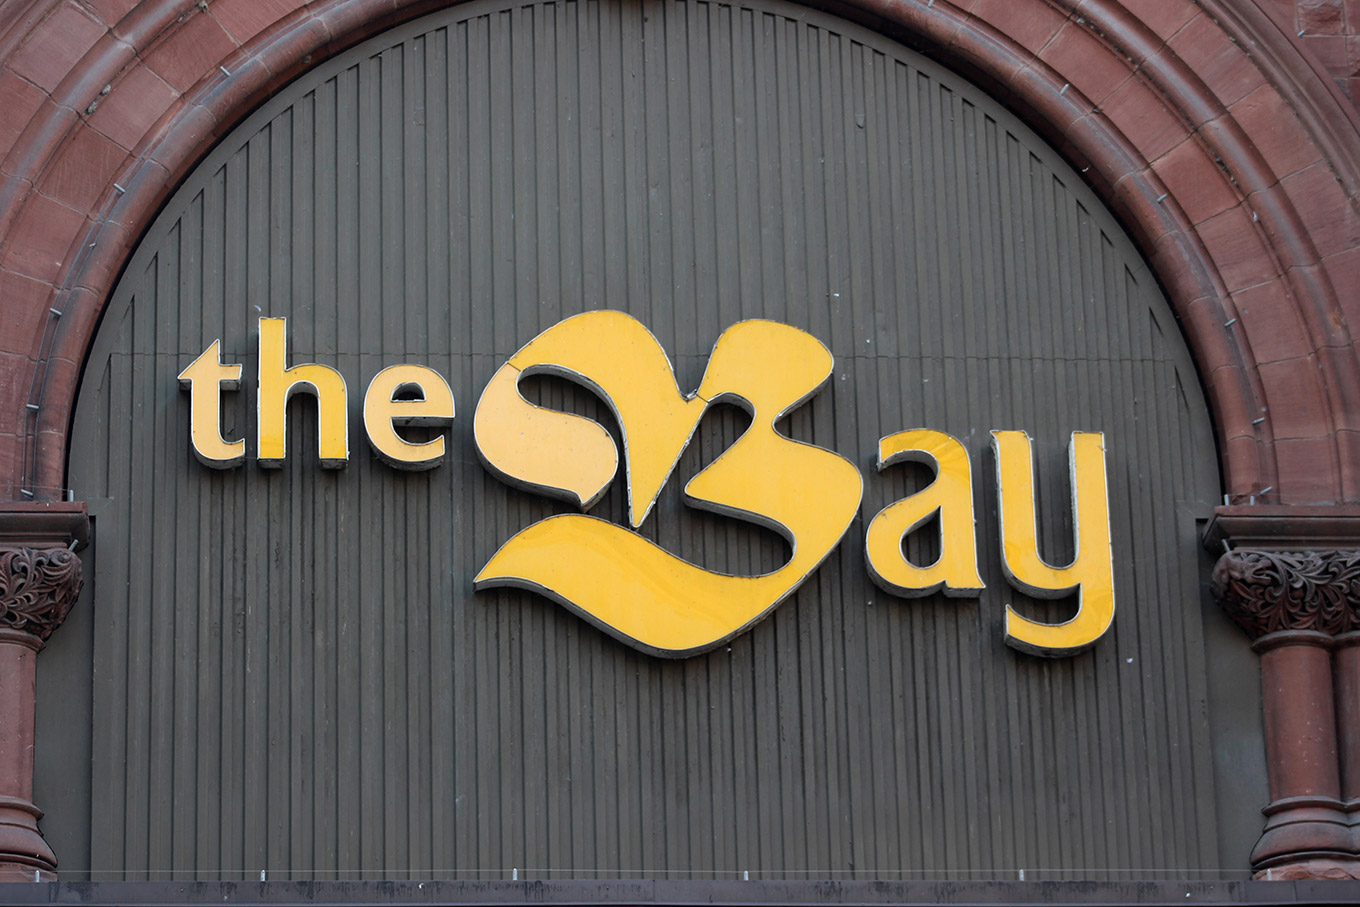 The iconic Bay logo